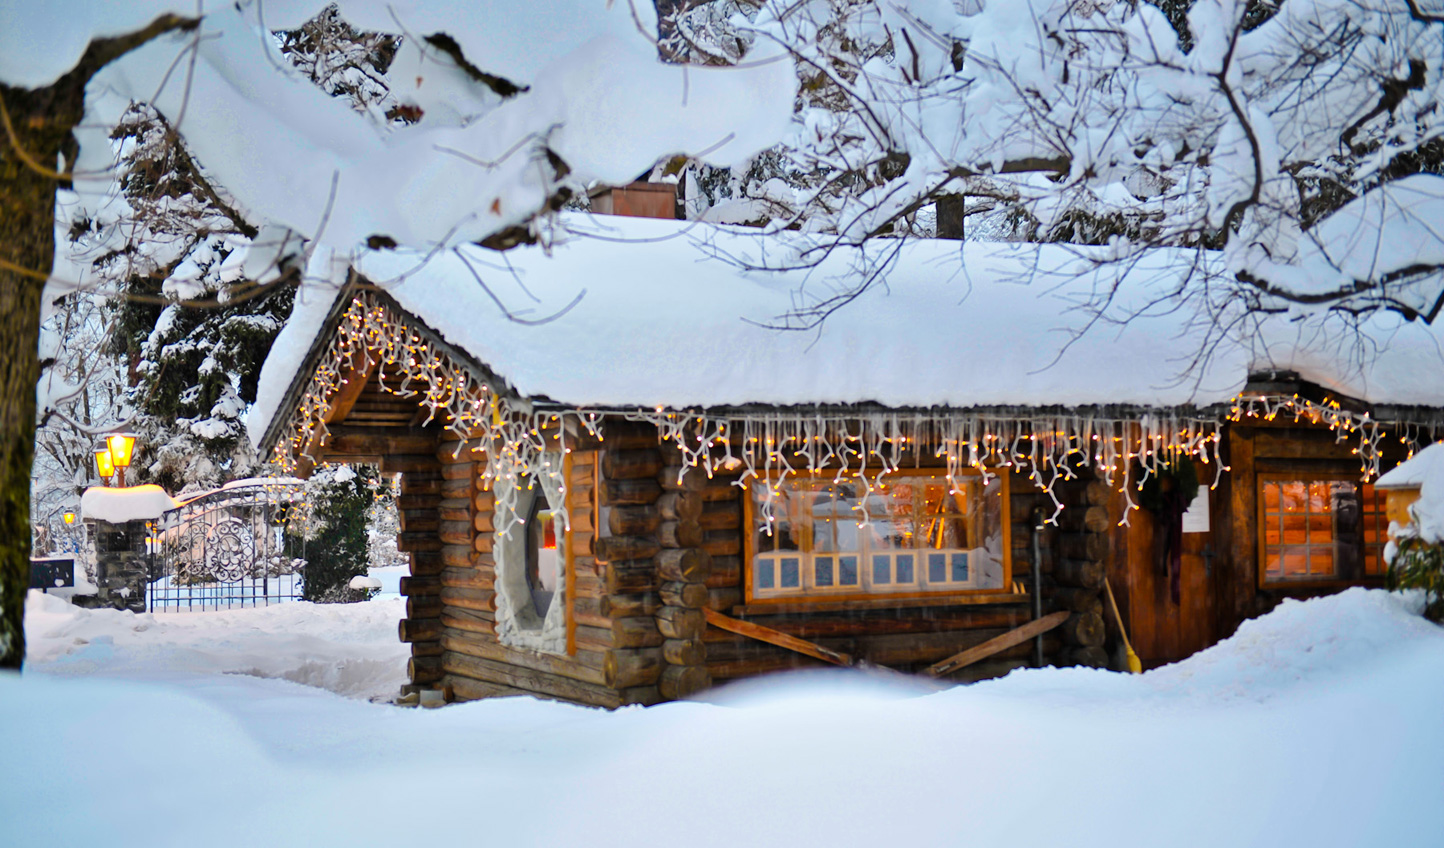 Make your way through the snow to the raclettes and fondues of Le Petit Chalet